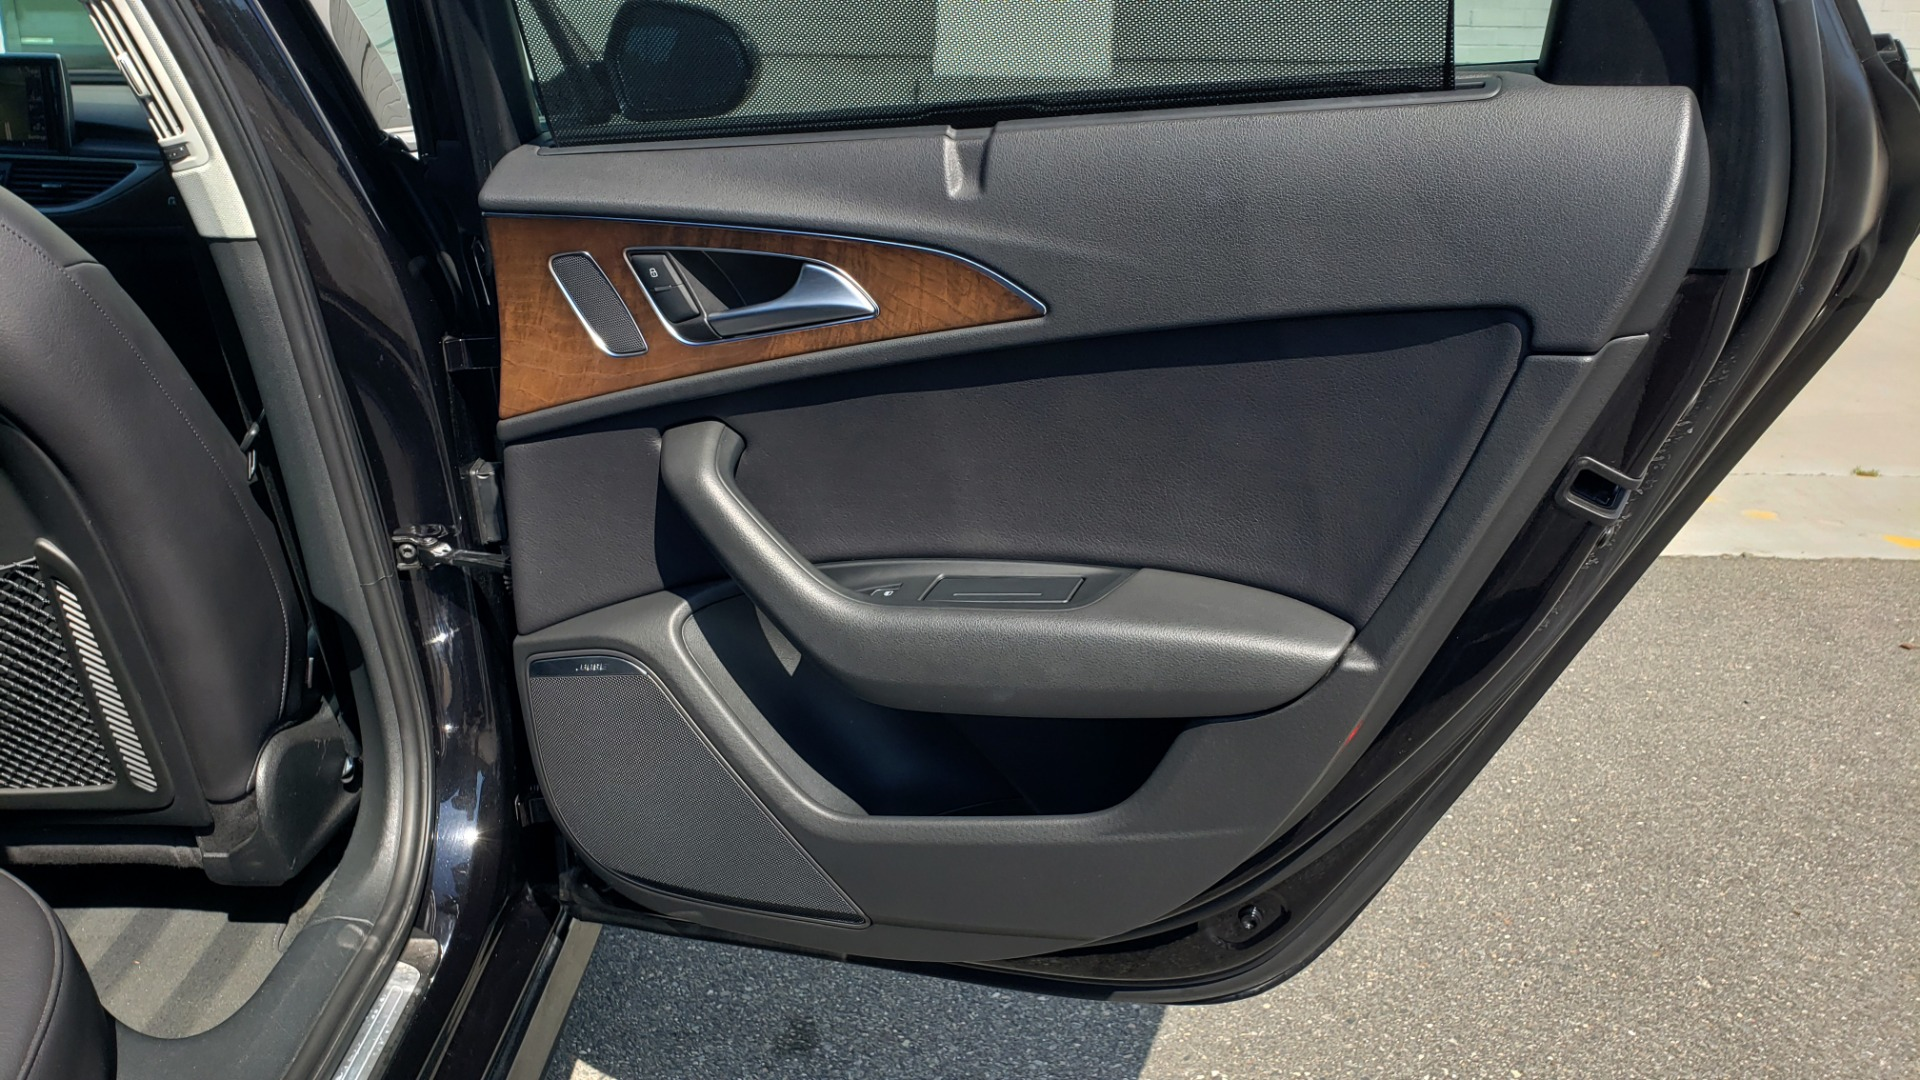 Used 2015 Audi A6 3.0T PRESTIGE / BLACK OPTIC / CLD WTHR / BOSE / HUD / SUNROOF for sale Sold at Formula Imports in Charlotte NC 28227 74